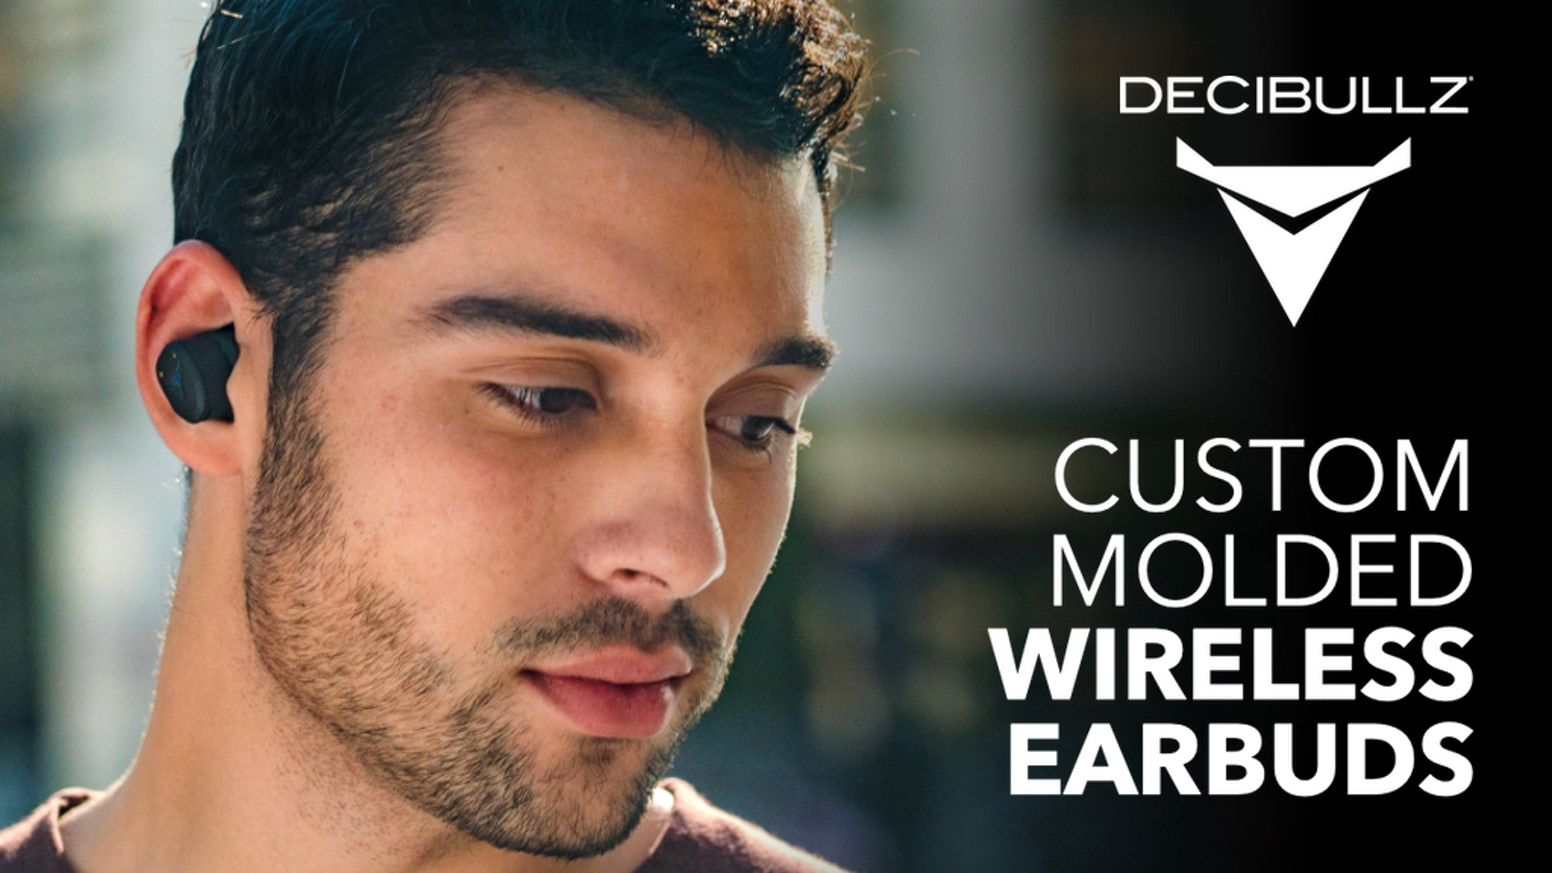 True Wireless Earphones that are easily and quickly shaped to your ears creating a perfect fitting earphone that will never fall out.